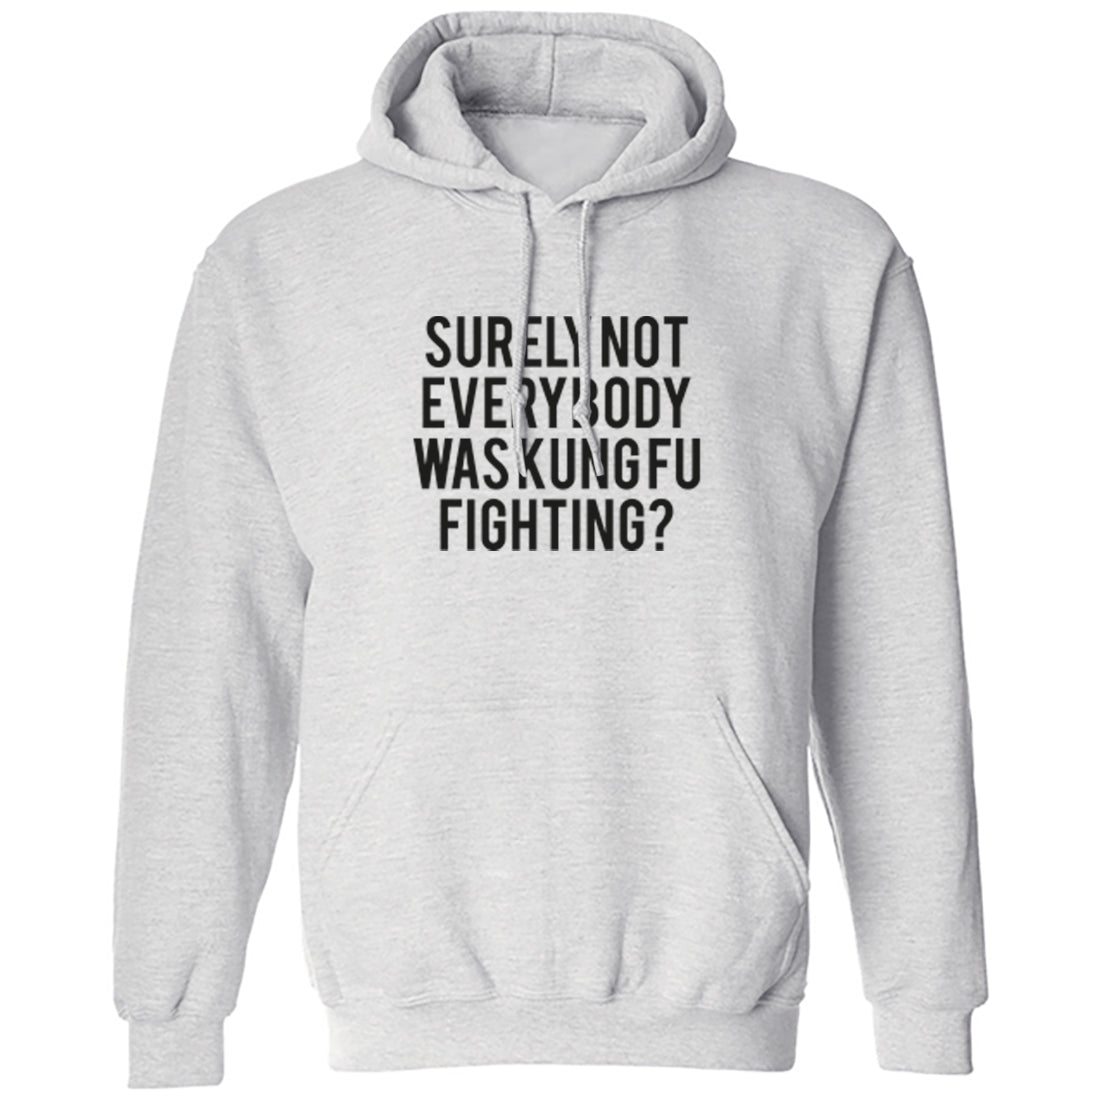 Surely Not Everybody Was Kung Fu Fighting? Unisex Hoodie K2139 - Illustrated Identity Ltd.